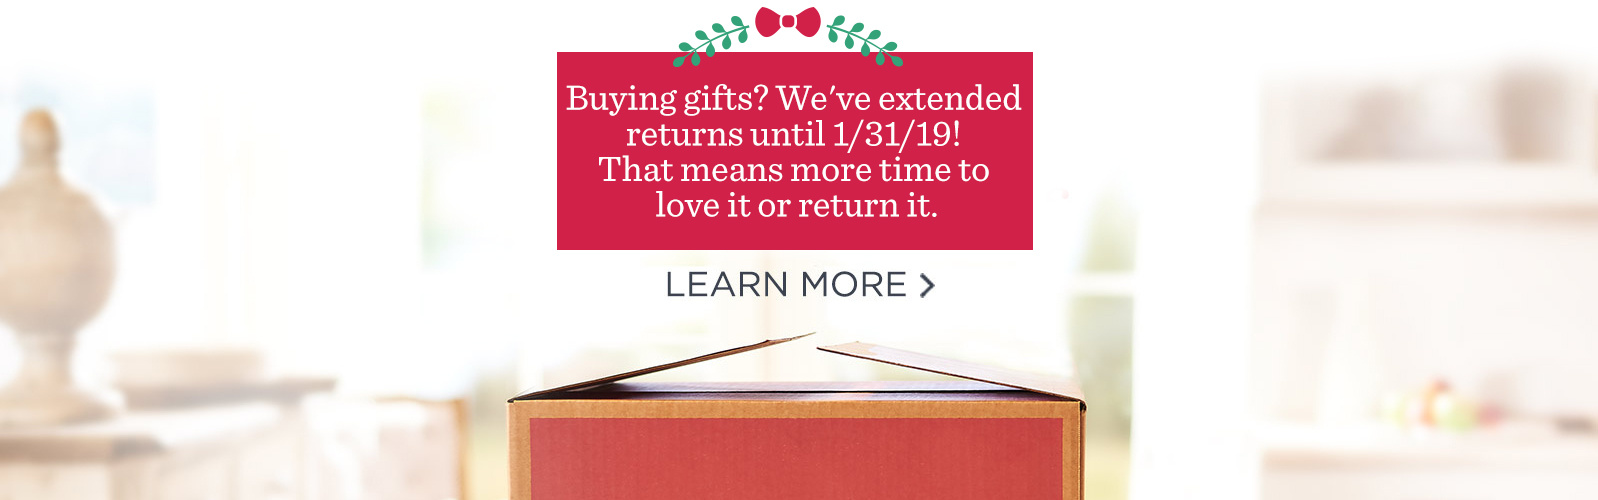 Buying gifts? We've extended returns until 1/31/19! That means more time to love it or return it. Learn more